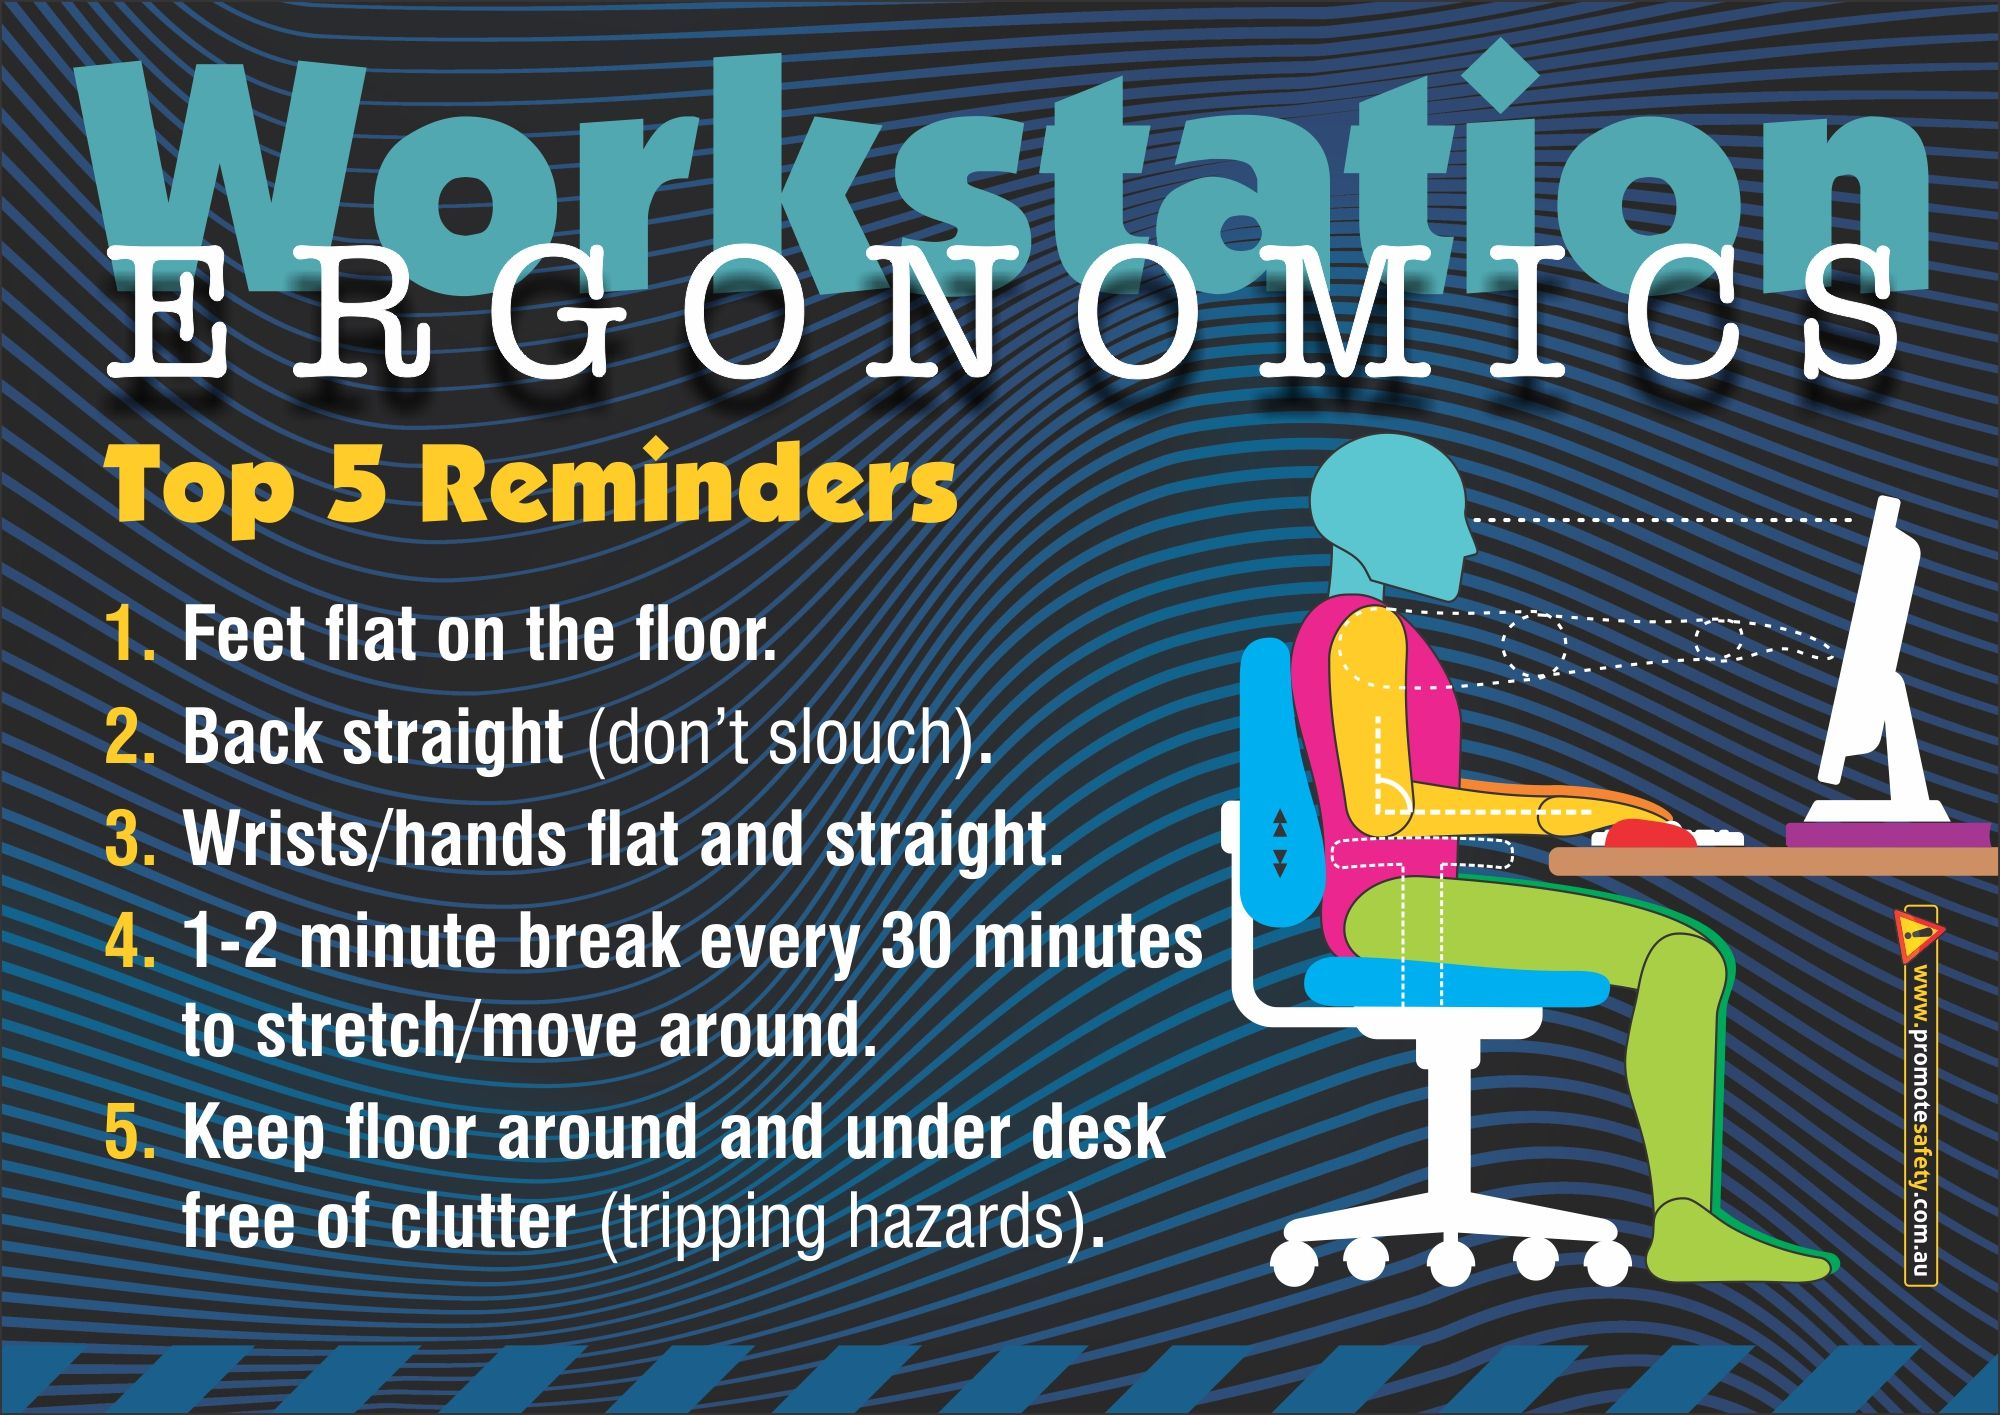 Workplace Safety and Health Workstation Ergonomics